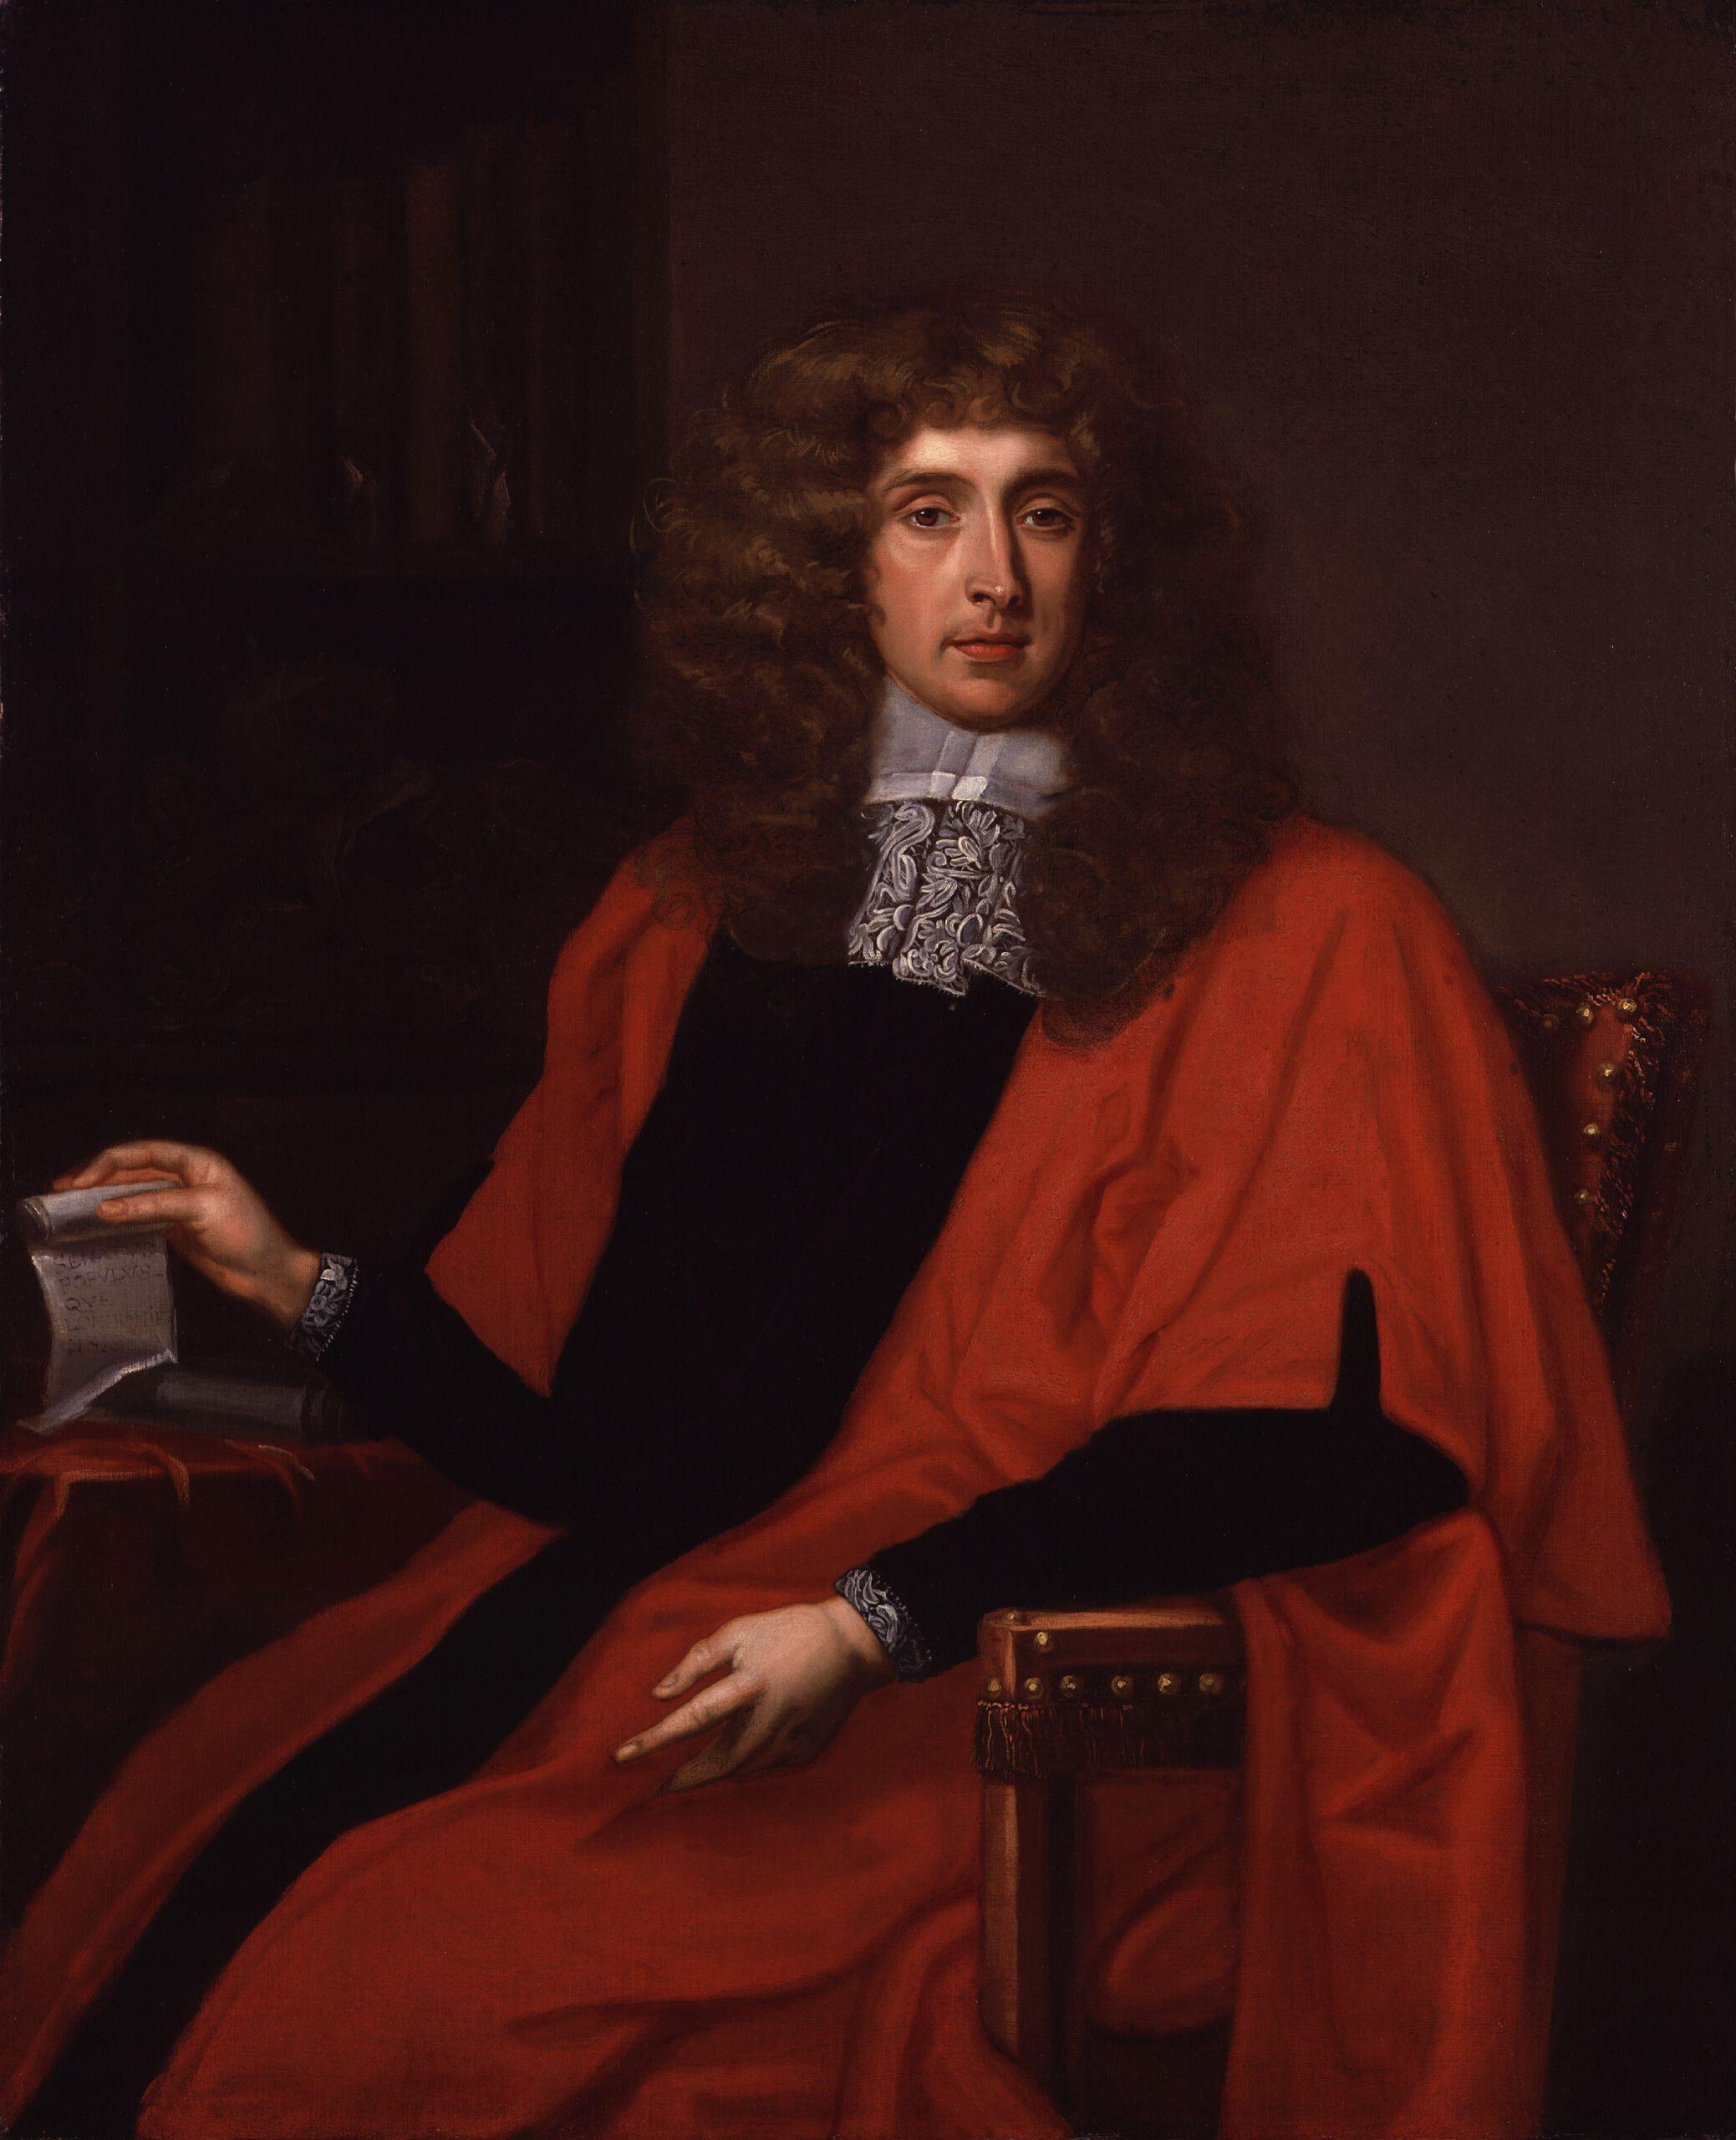 George_Jeffreys_1st_Baron_Jeffreys_of_Wem_by_William_Wolfgang_Claret | The Stour Valley Way